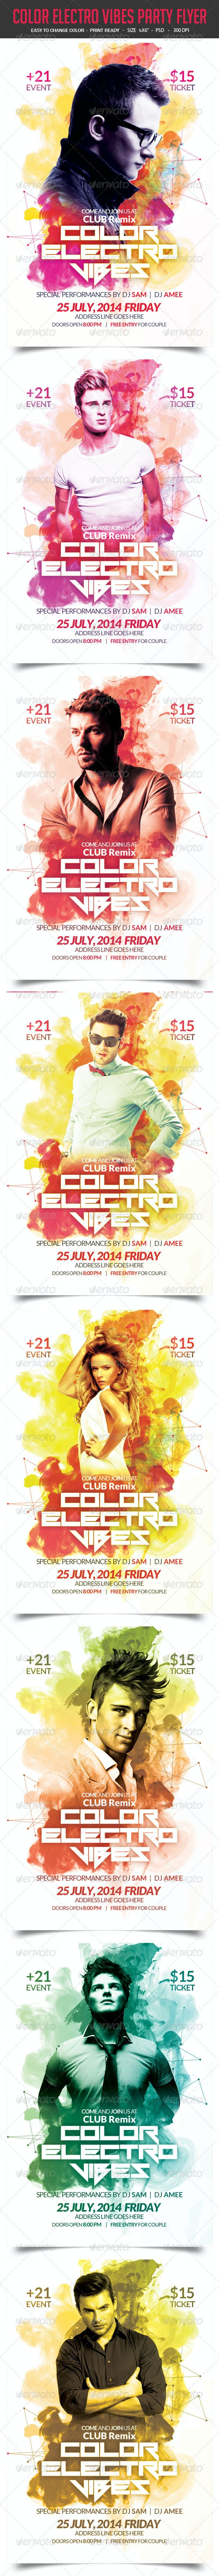 Color Electro Vibes Party Flyer - Clubs & Parties Events